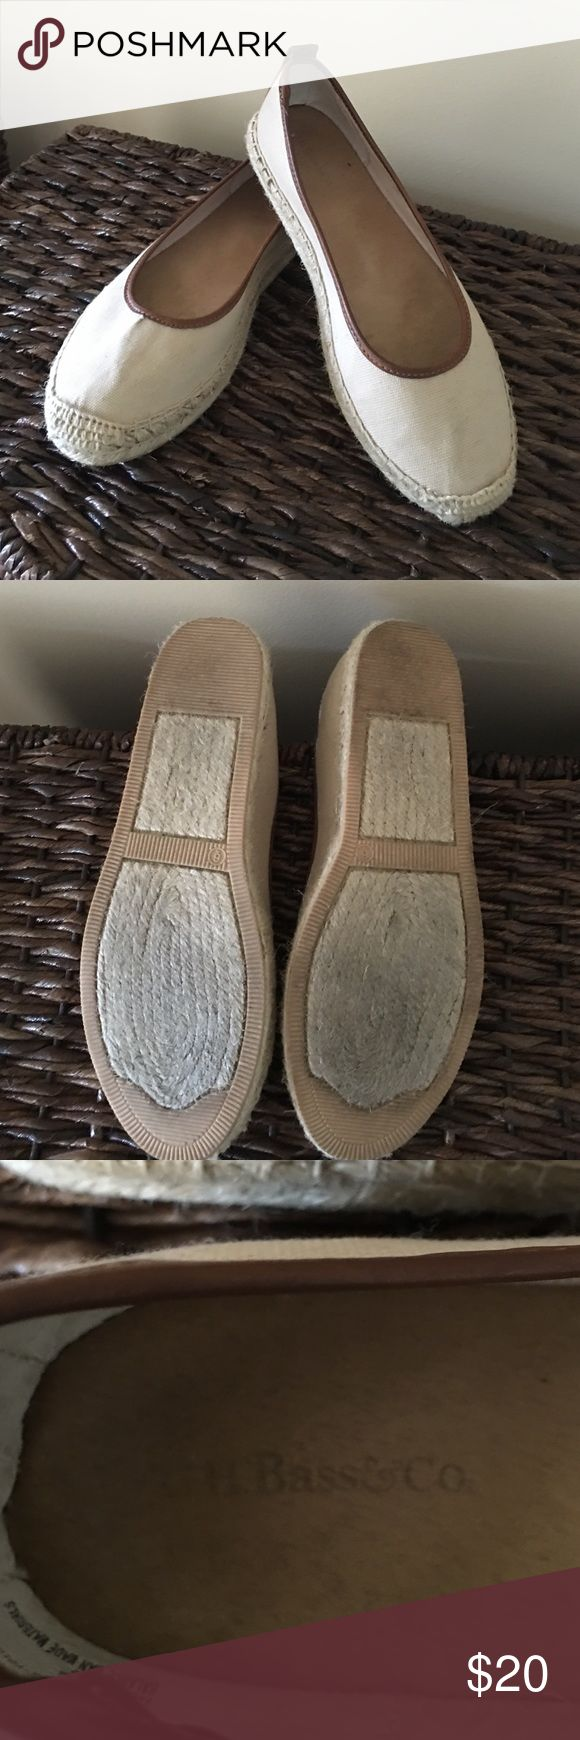 SALE🎉 Beige espadrille flats with brown leather These are GH Bass and Co espadrille flats.  Padded inner soles.  No visible wear. Except bottom a little dirty on soles.  Very comfy.  Beige canvas with brown leather trim. Bass Shoes Espadrilles